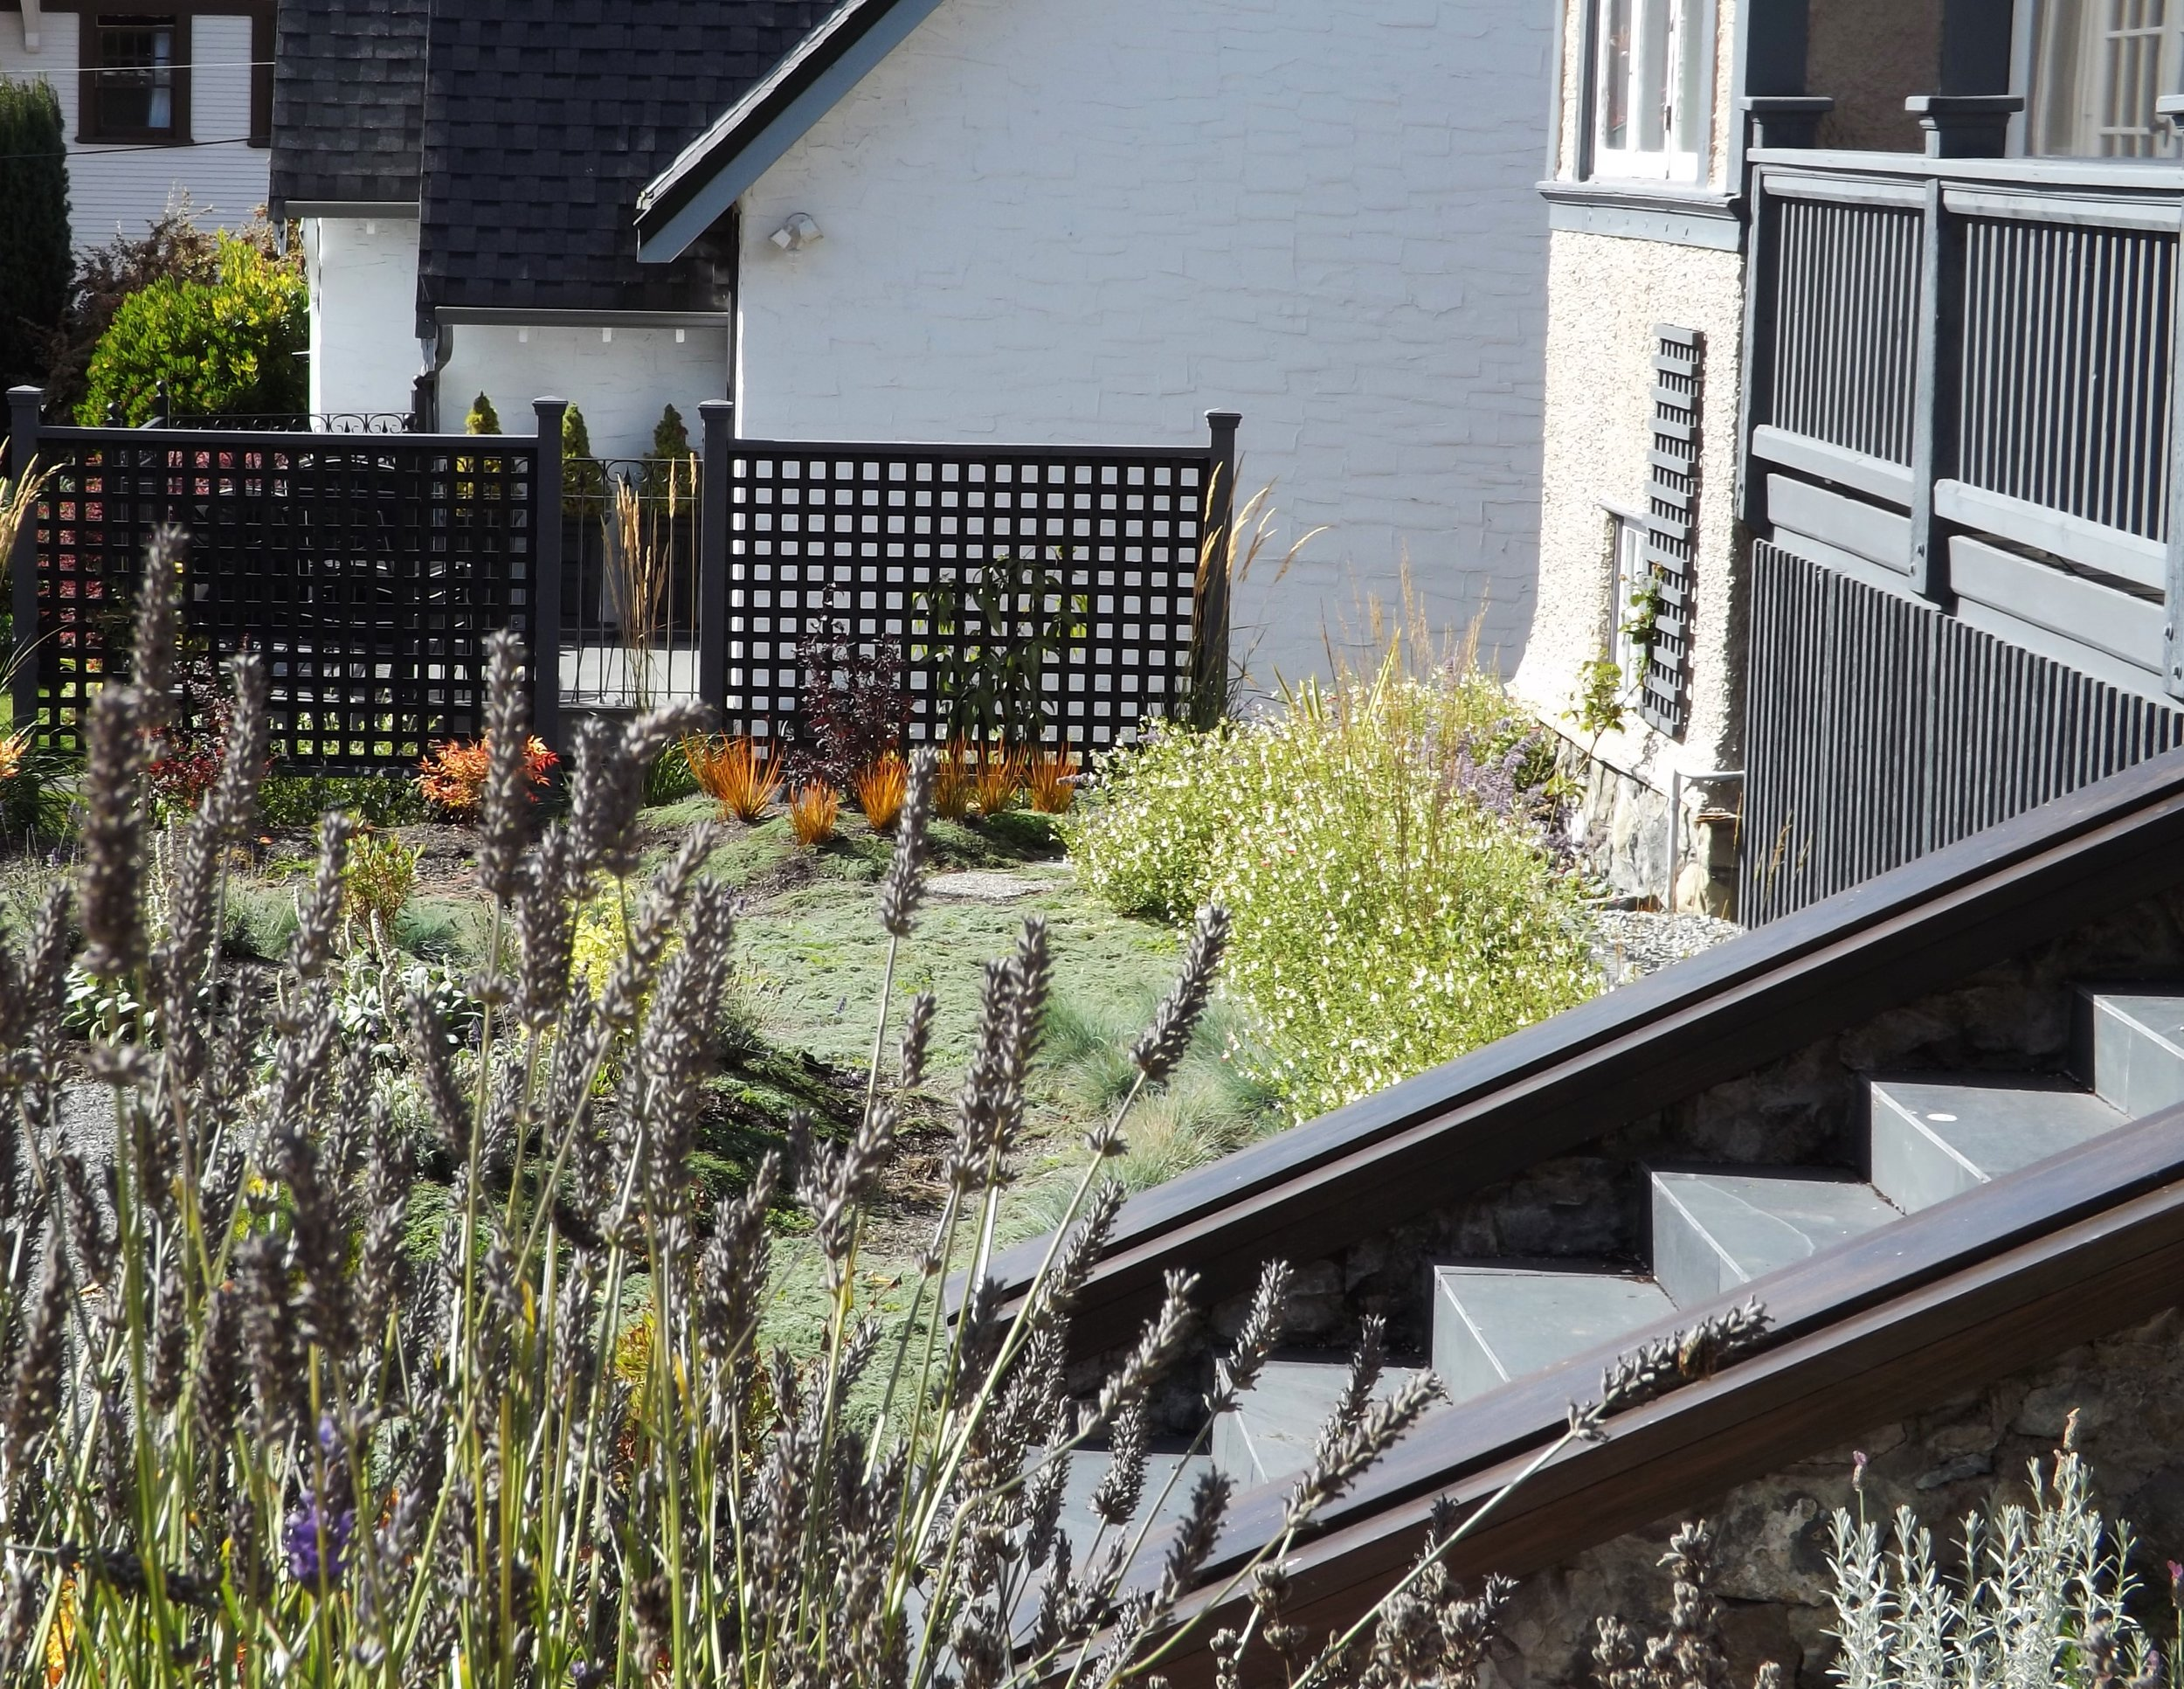 Lavender, sage, rosemary and oregano are some of the vibrant perennials brightening the garden. The crumbling staircase was repaired and features black slate tiles and a new cap made from heavy fir planks with black stain